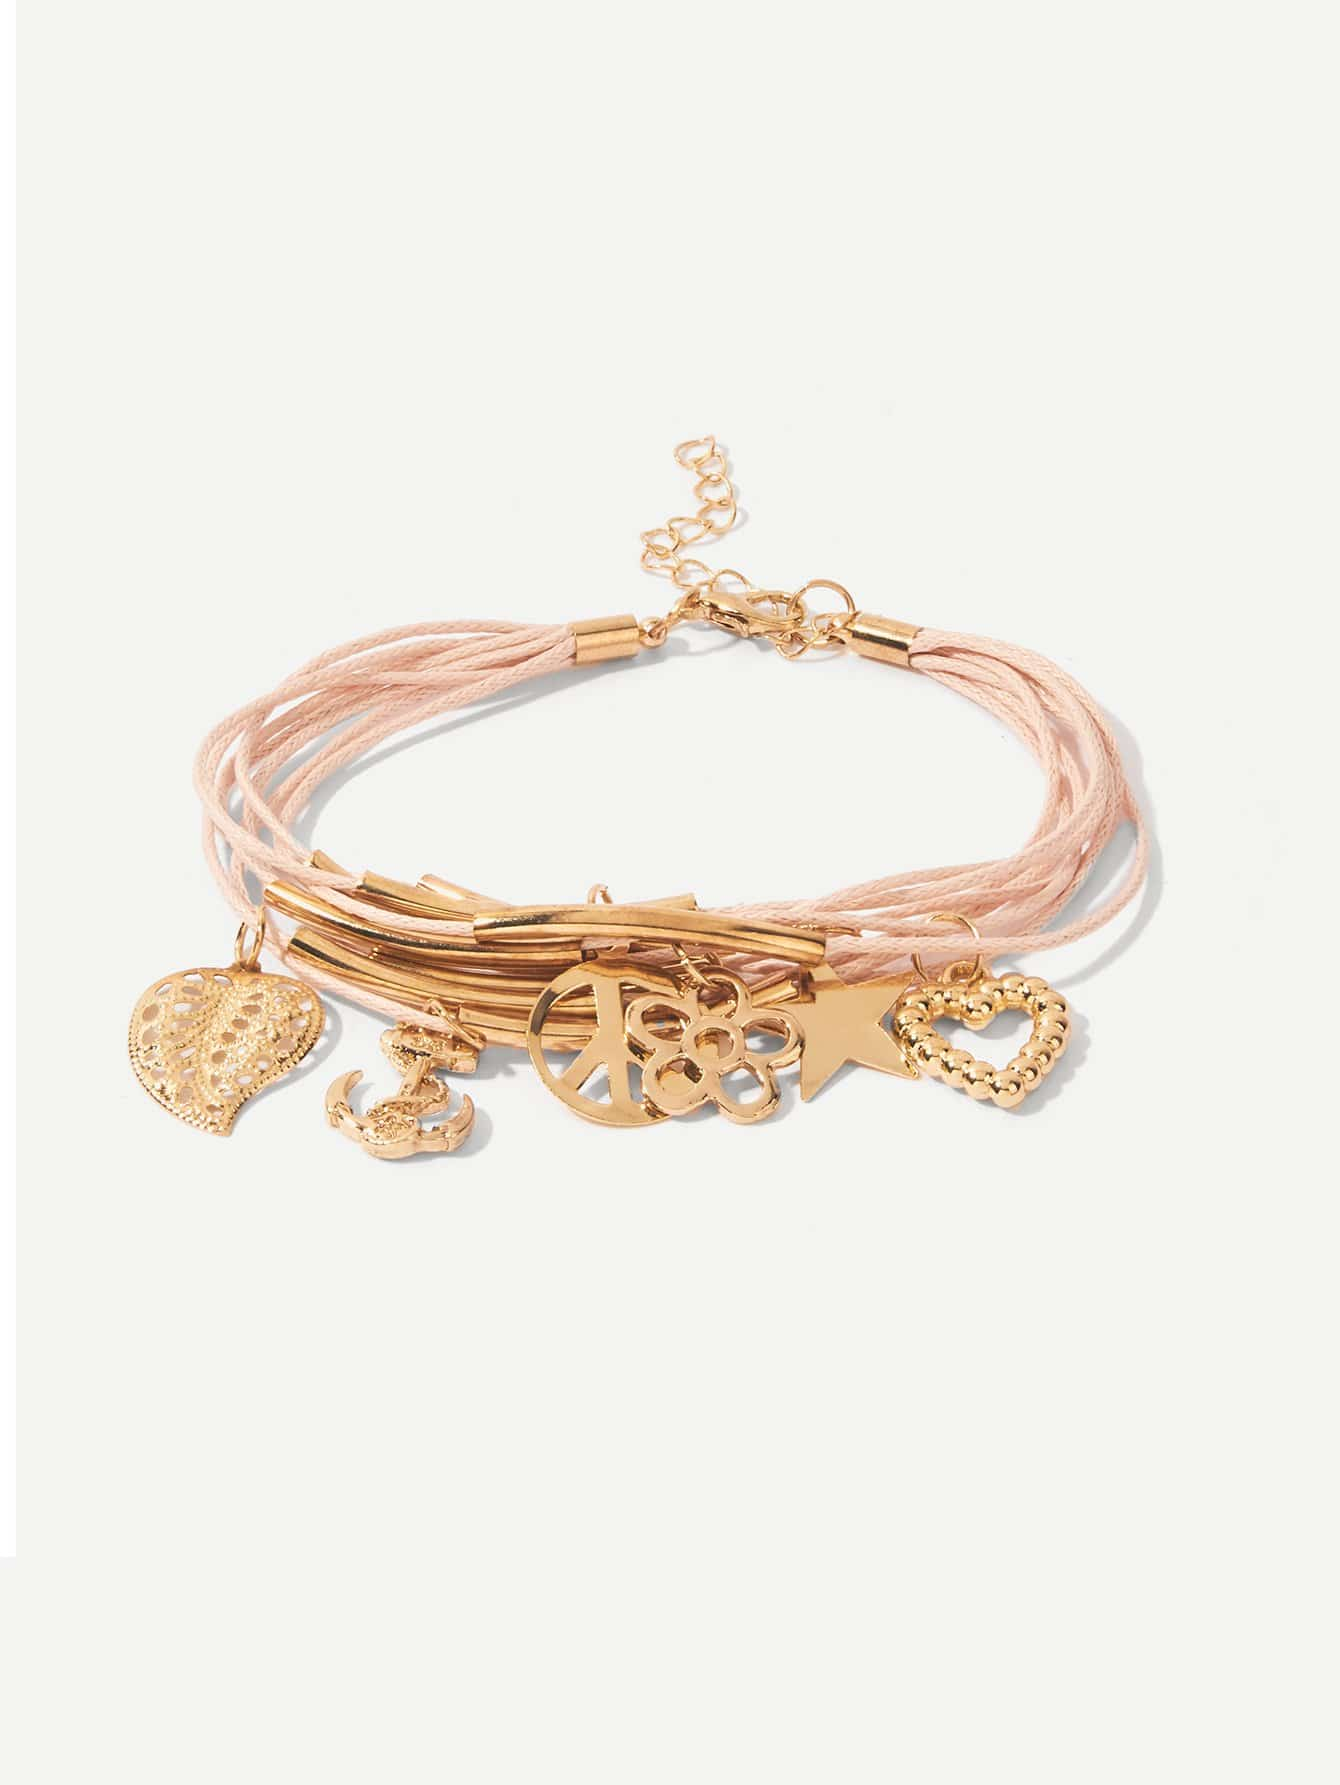 Anchor & Flower Detail Layered Bracelet trendy anchor cross layered bracelet for women